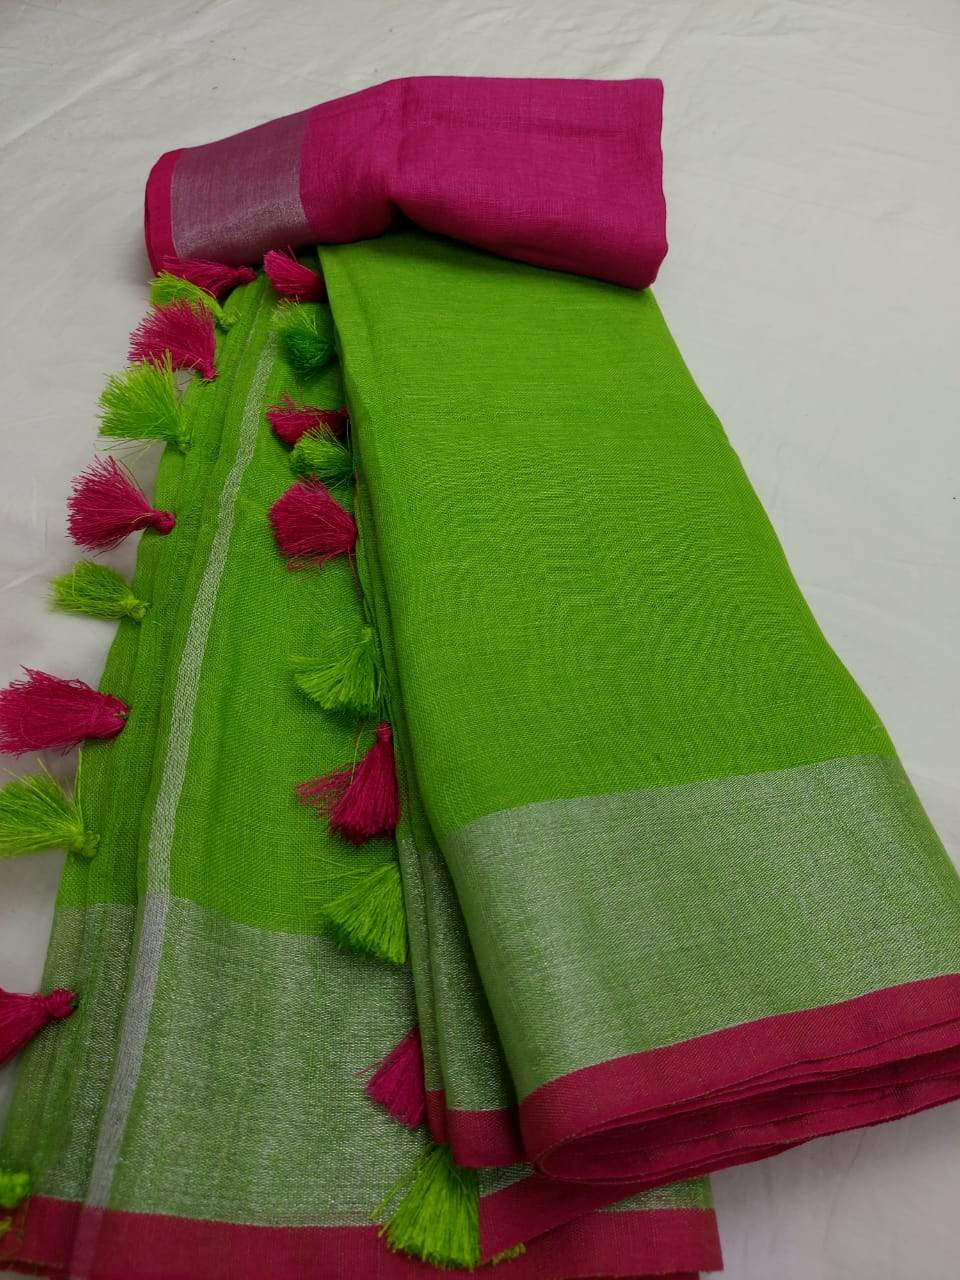 Pure Linen Saree Green and Pink,authentic linen saree, digital printed linen saree, line sarees online